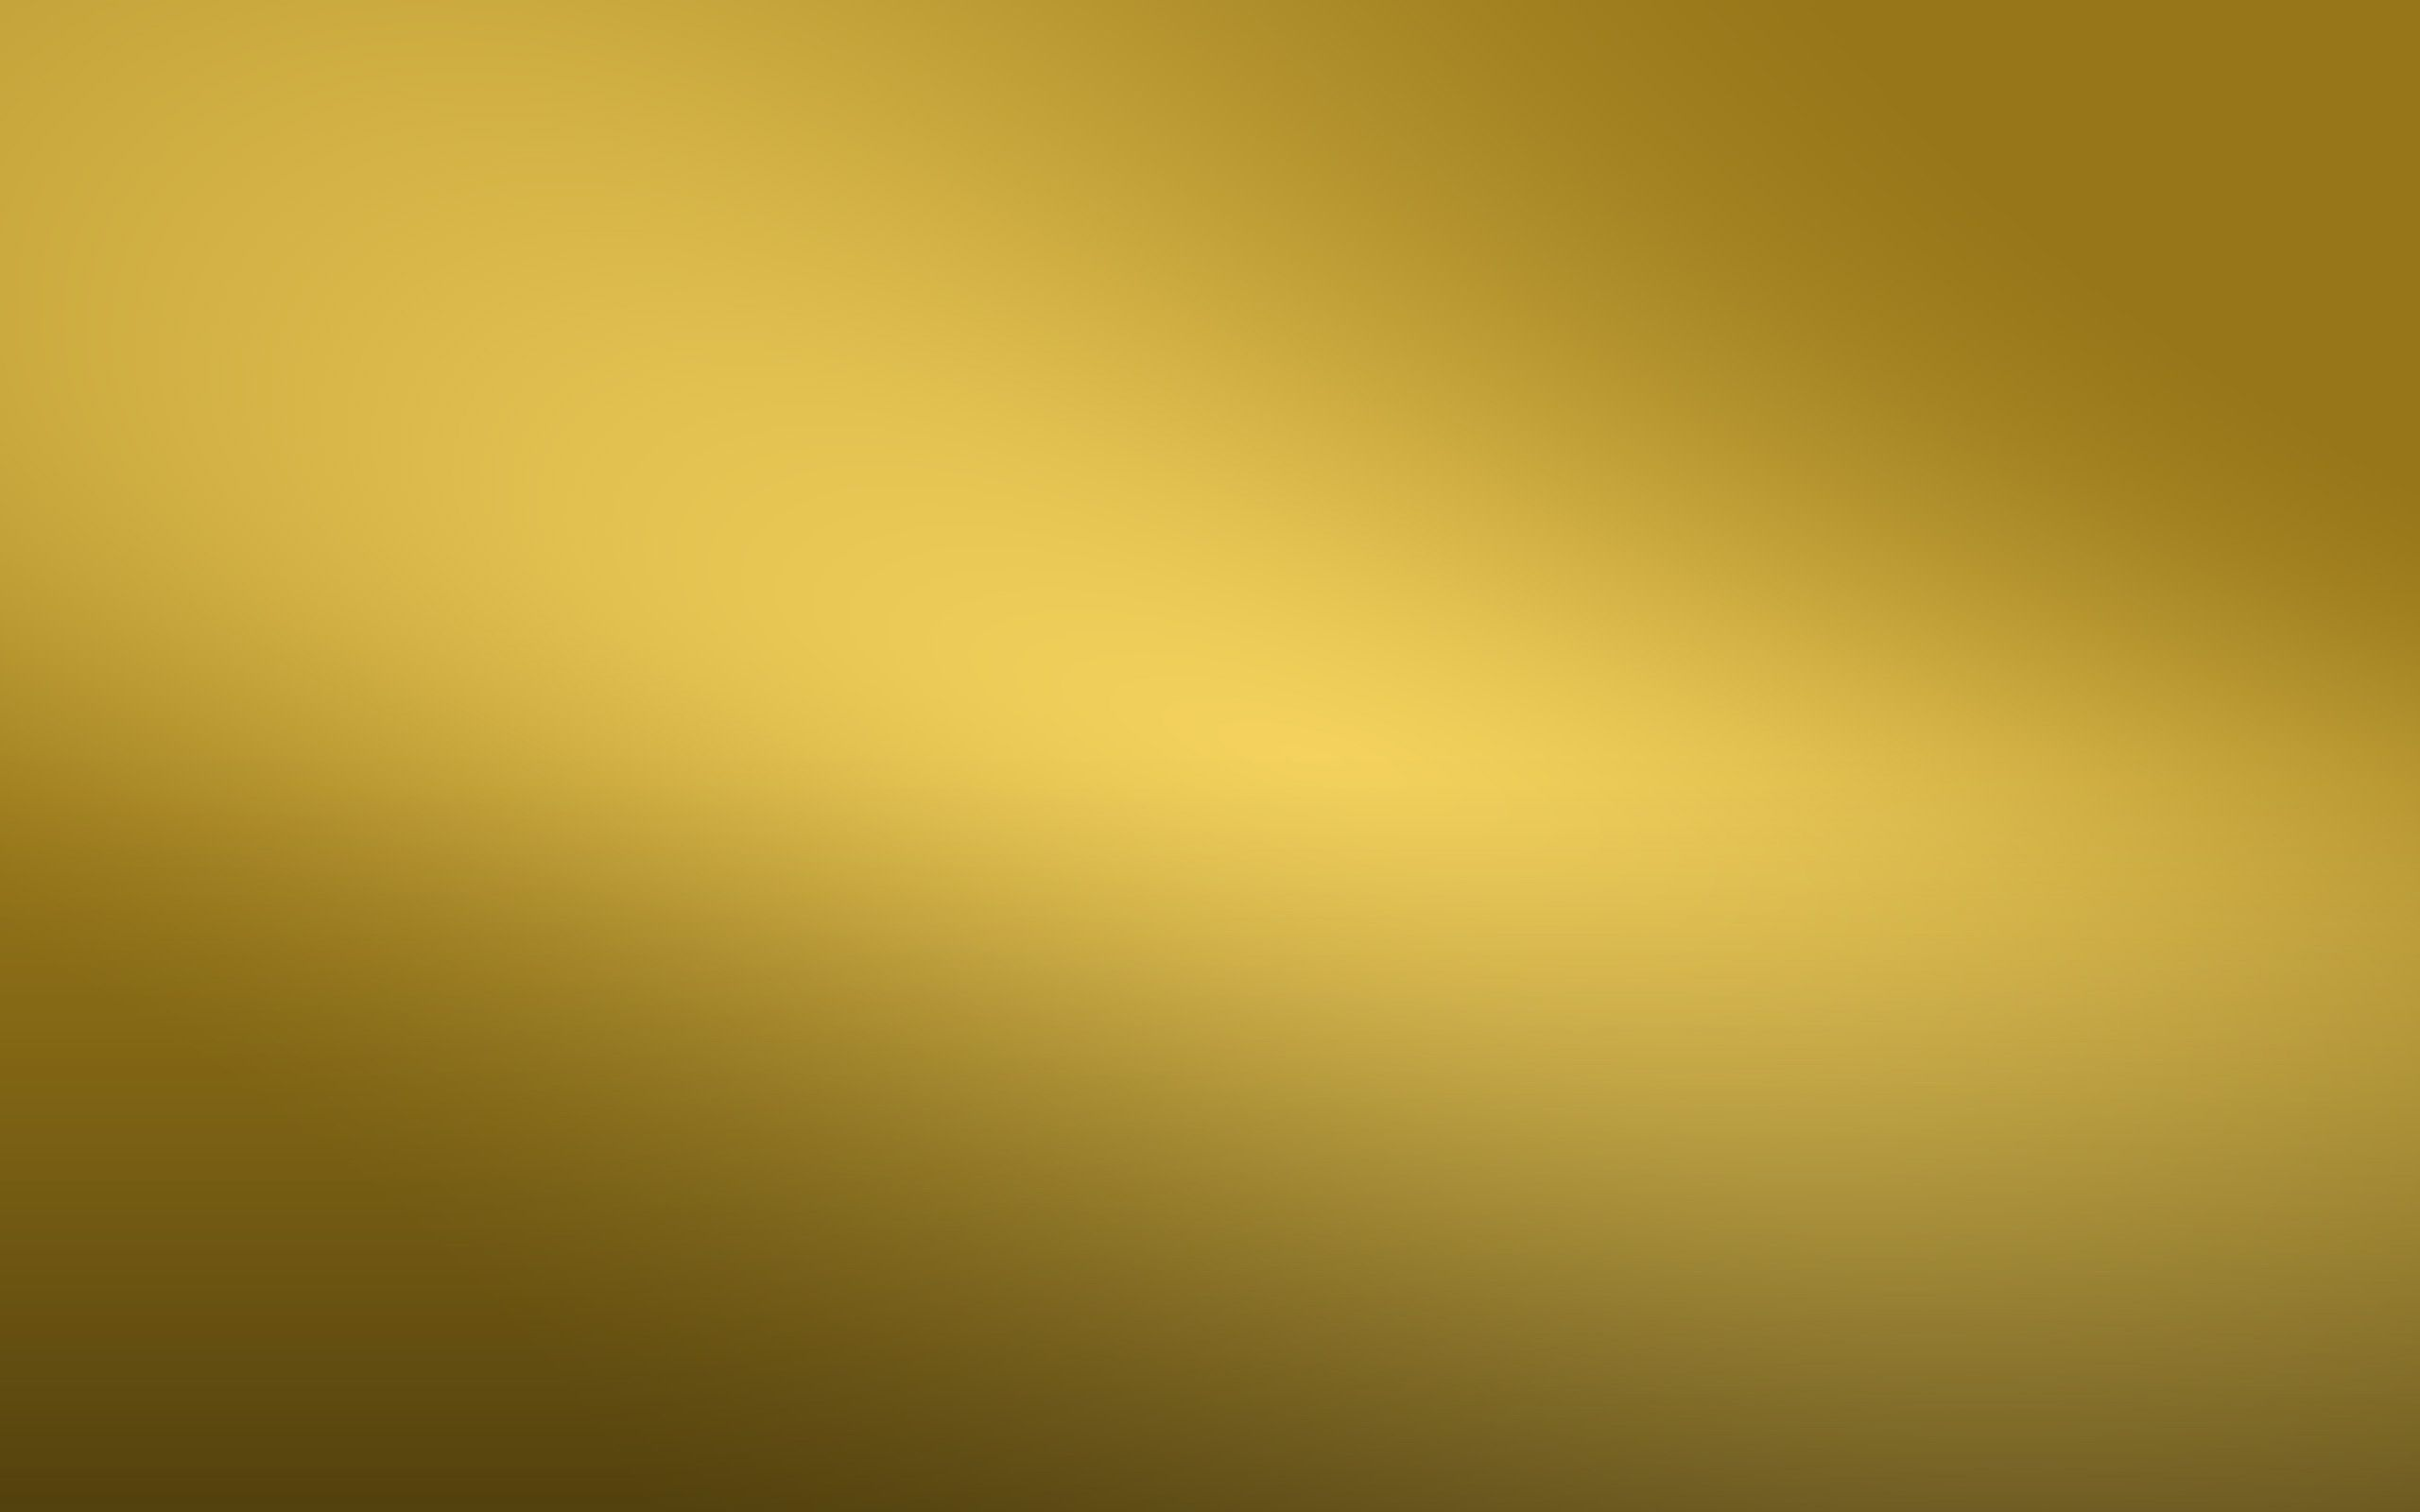 2560x1600 Gold Wallpaper (46+ images) on Genchi.info